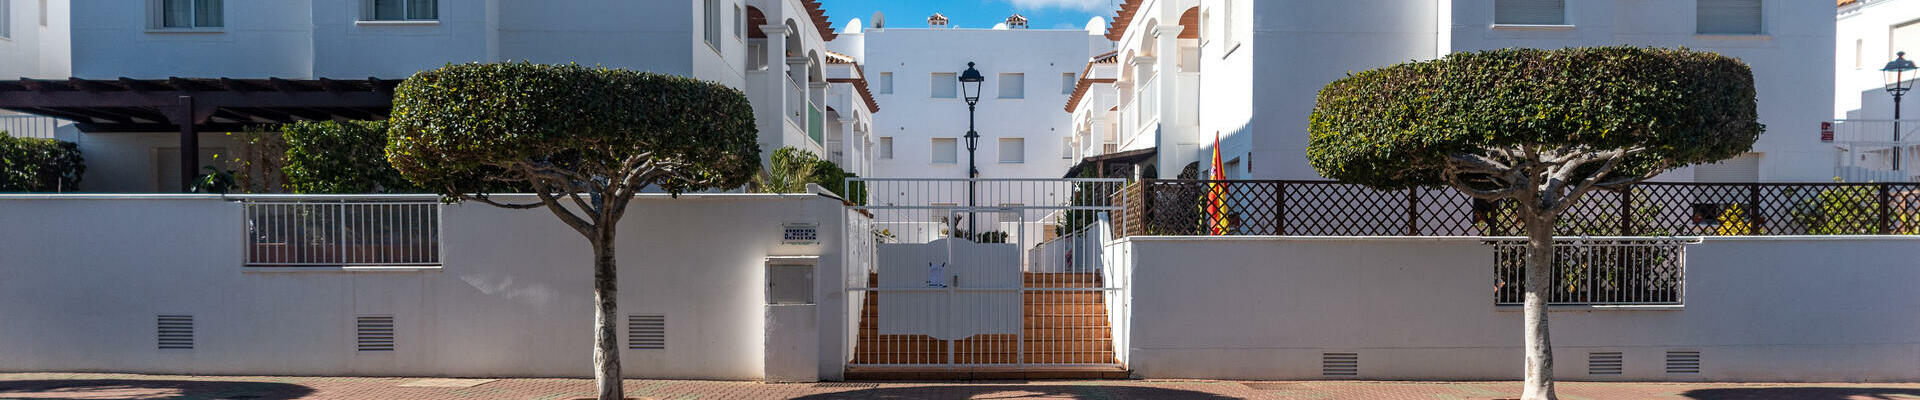 A1415: 3 Bedroom Apartment for Sale